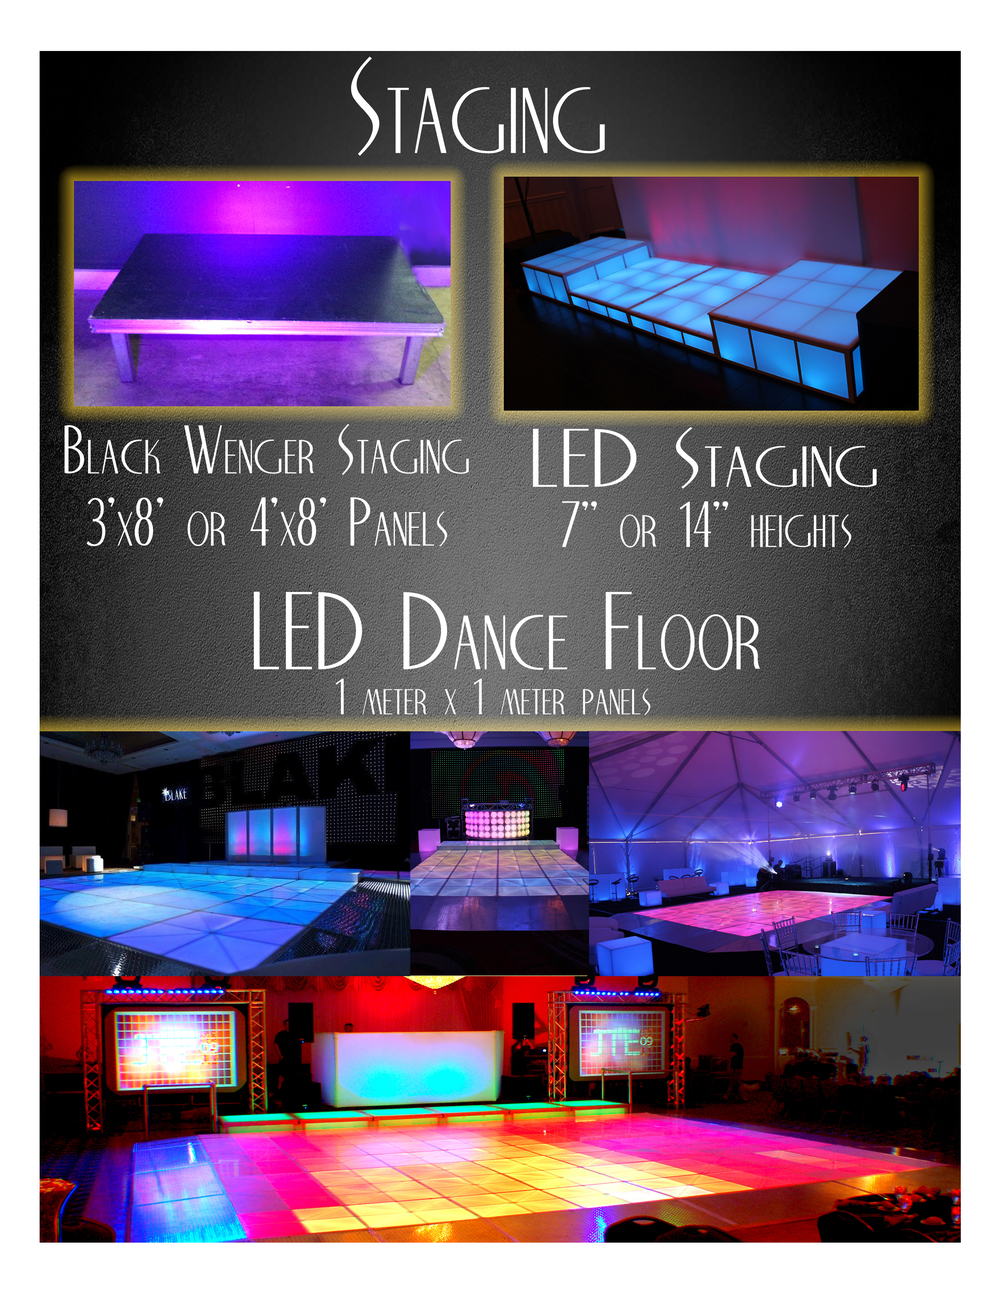 P6_Staging & LED Dance Floor.jpg